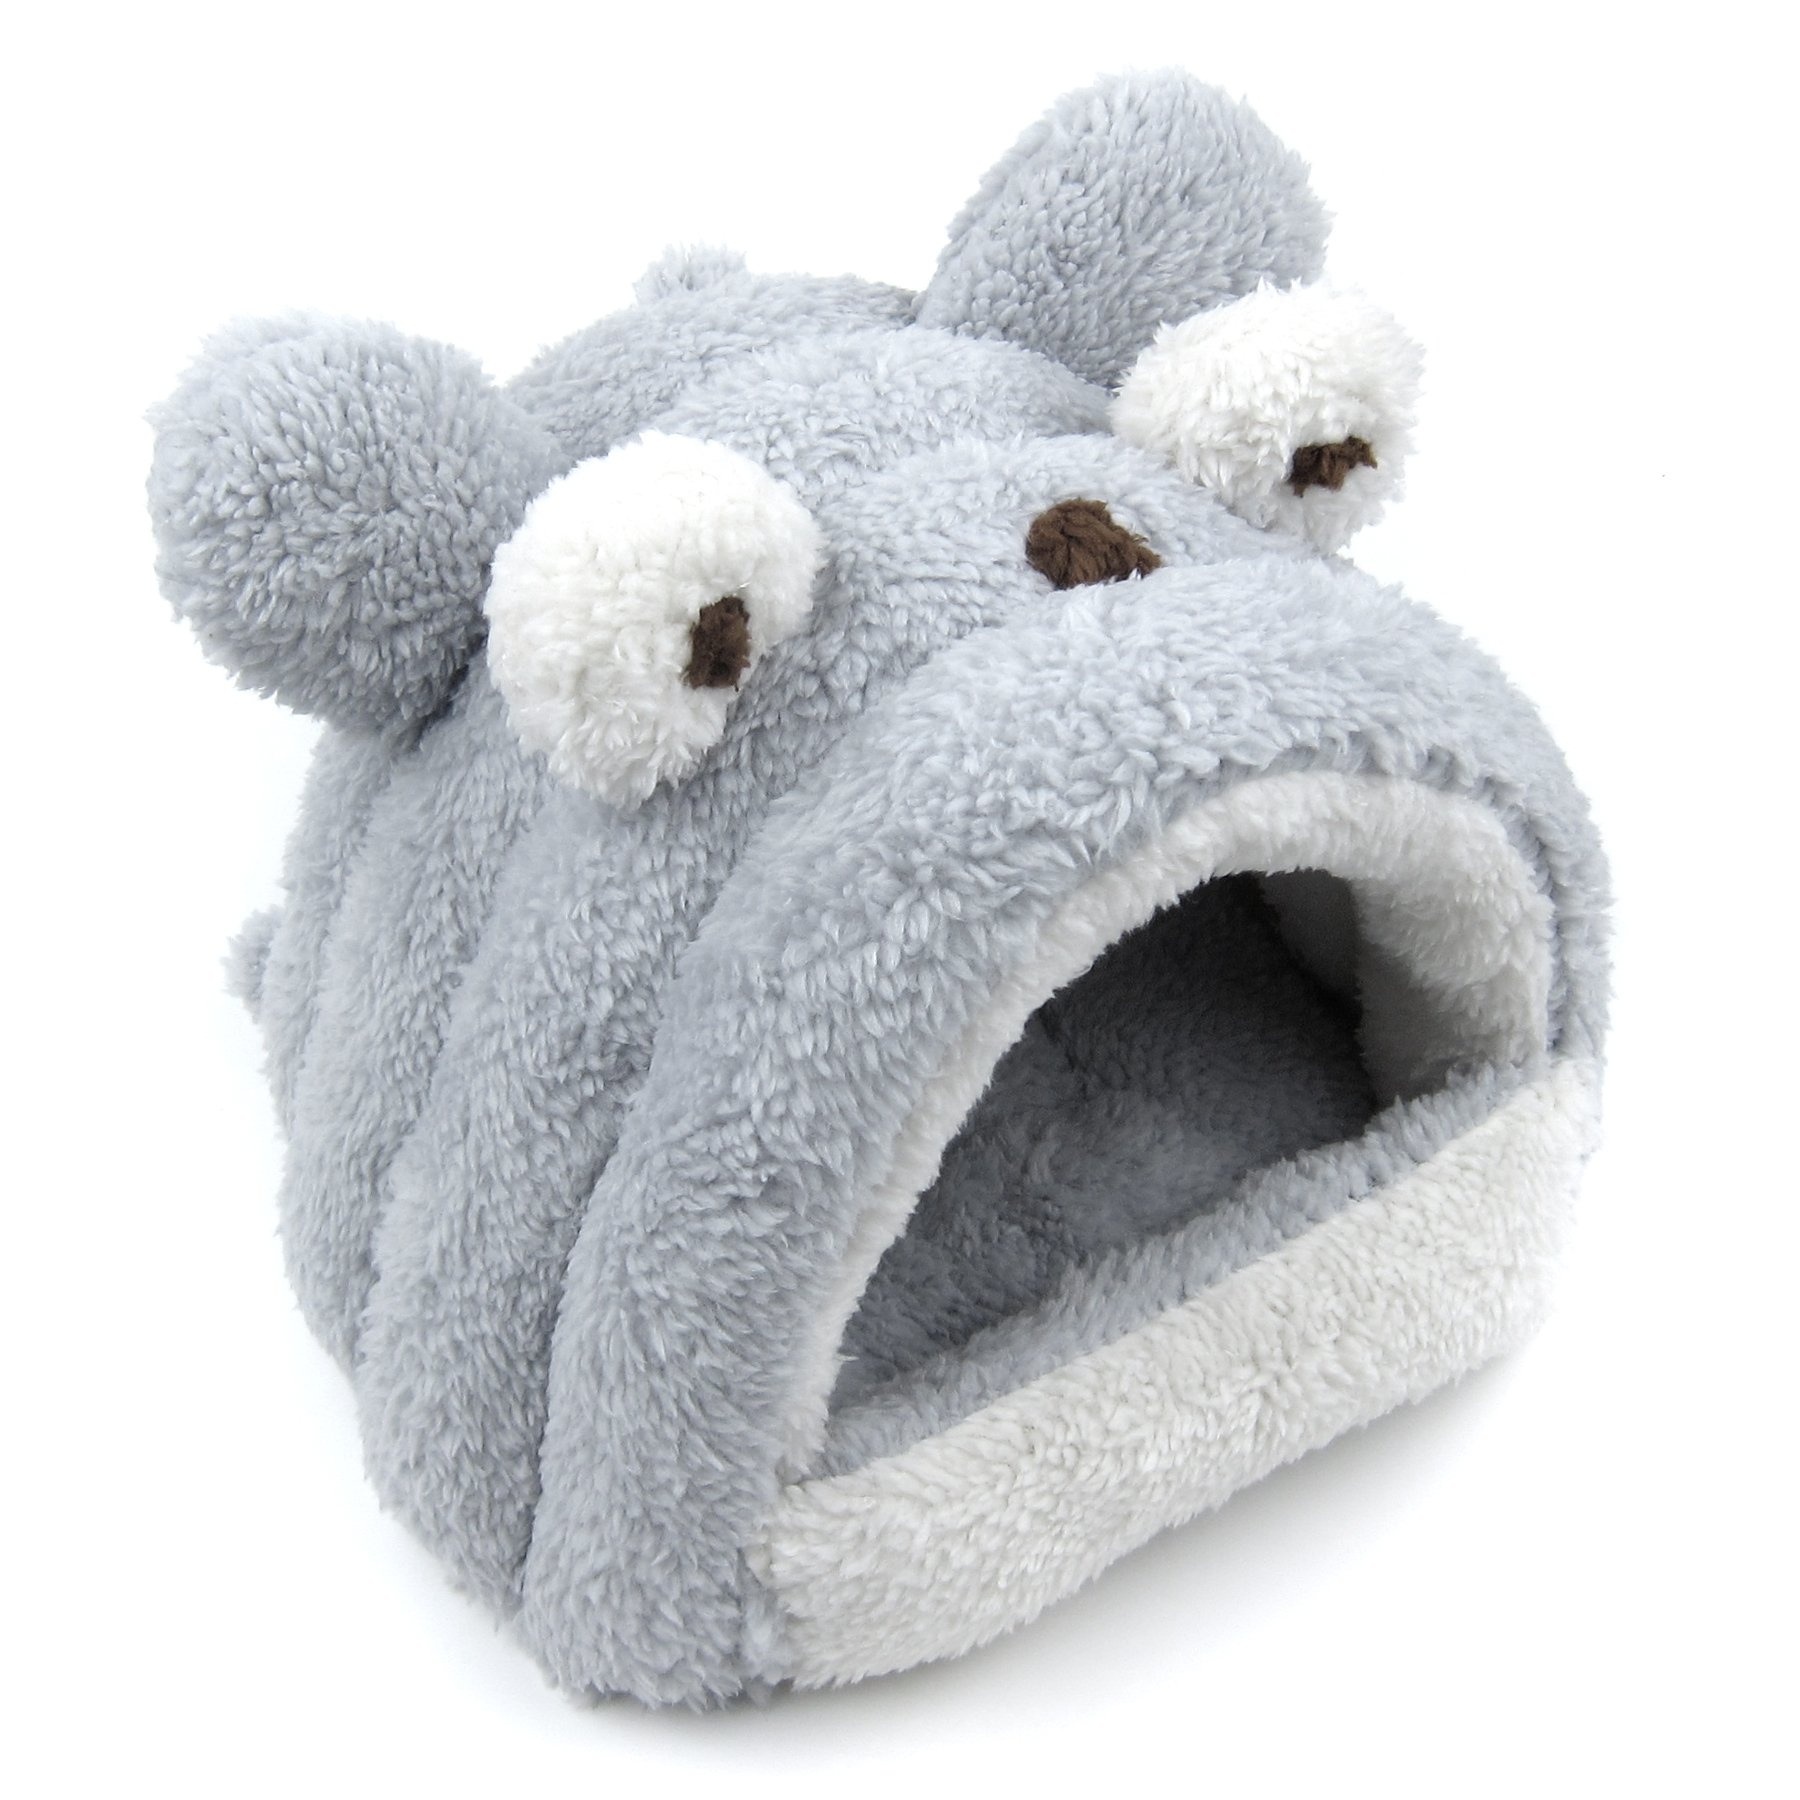 Alfie Pet by Petoga Couture - Tobin Sleeping Cave Bed for Small Animals like Dwarf Hamster and Mouse - Color: Grey by Alfie (Image #3)